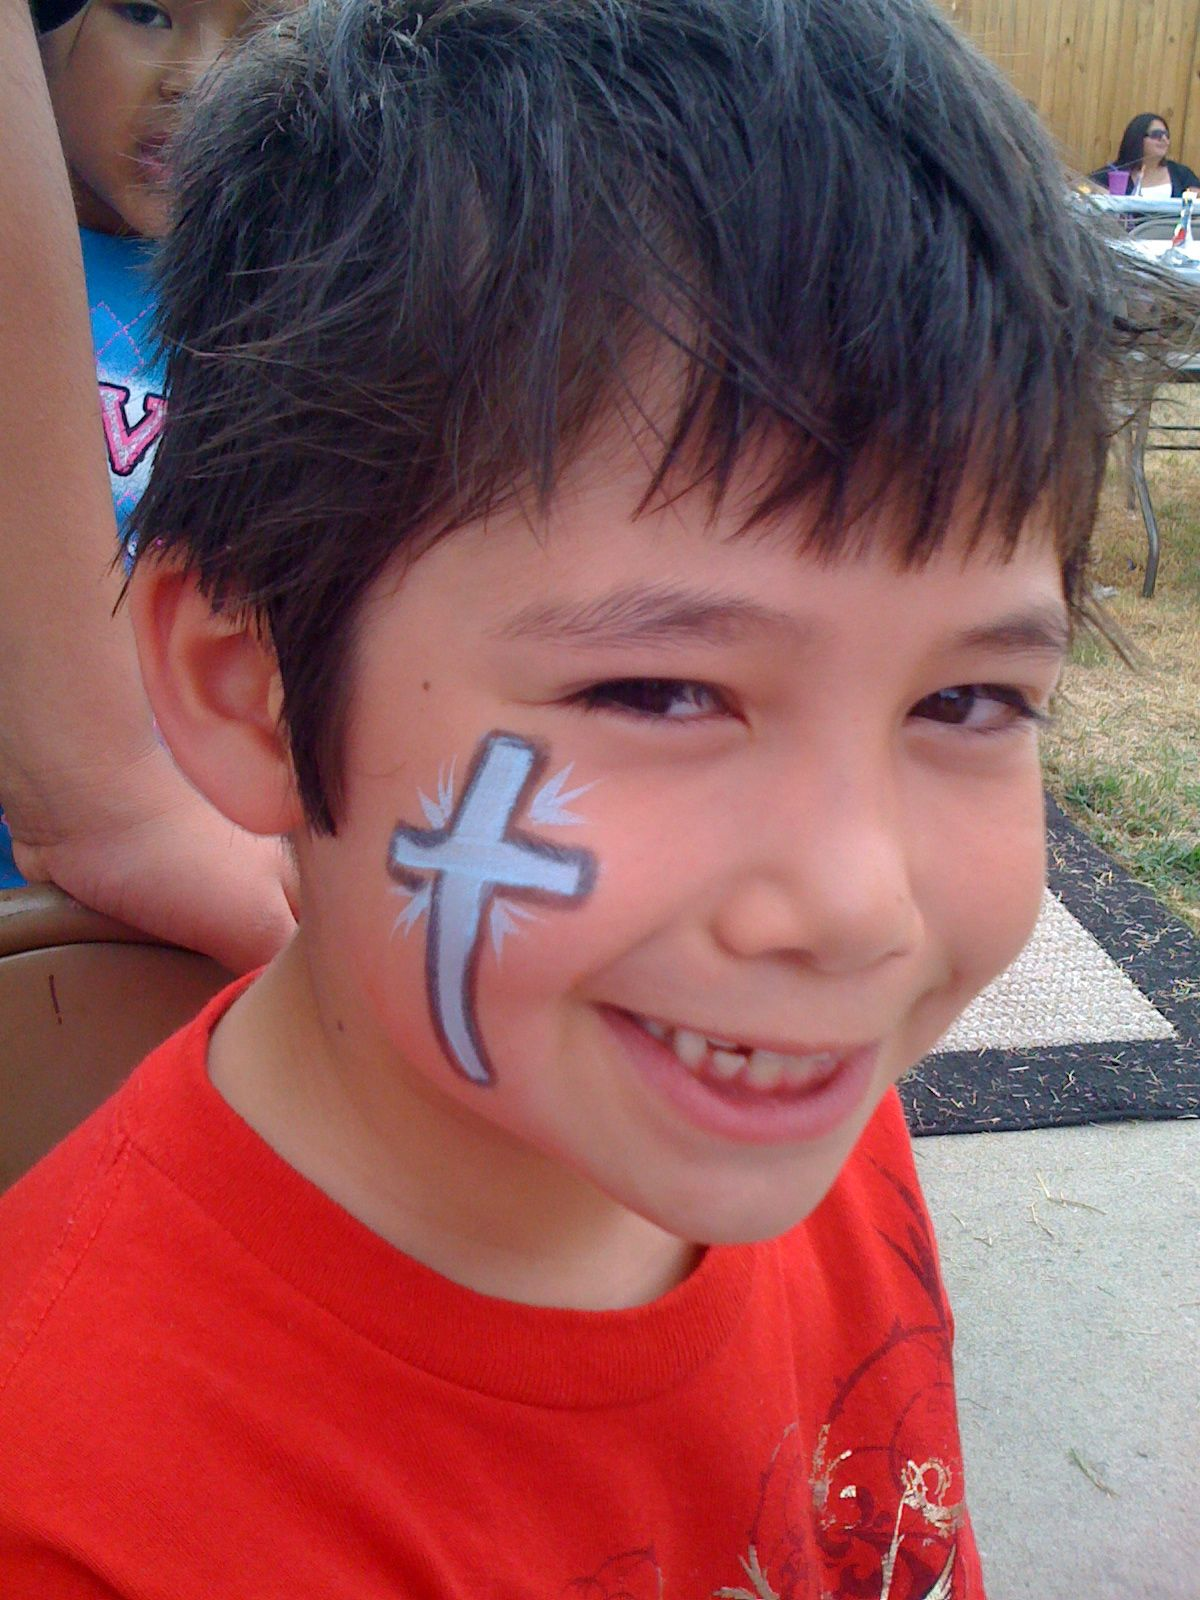 Face+painting+crosses